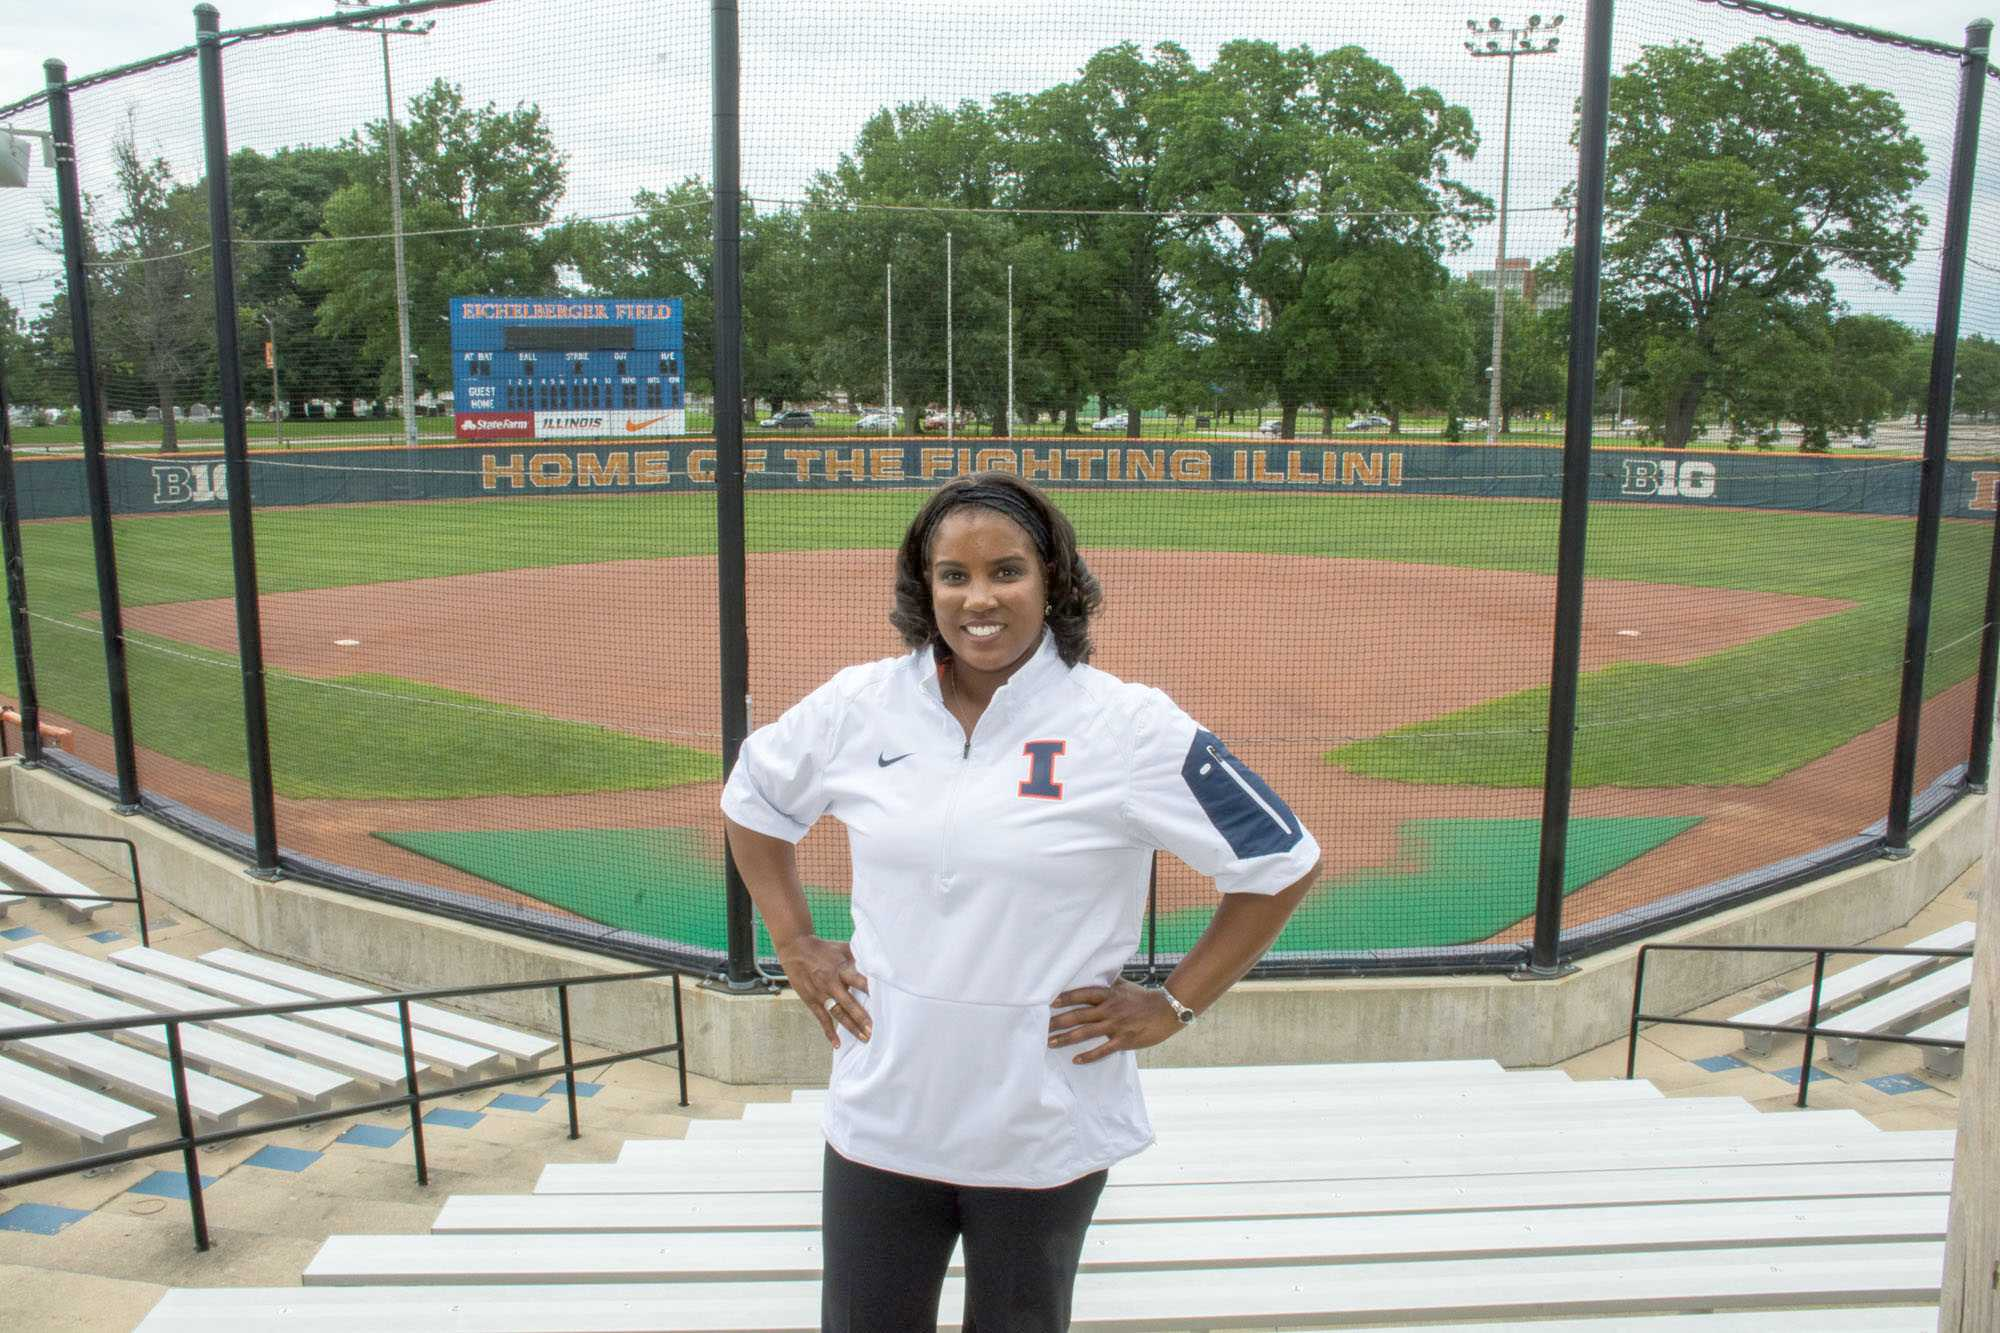 Tyra Perry, Illinois' new women's softball head coach, poses in her new Illini gear at Eichelberger Field after a press conference on June 25.